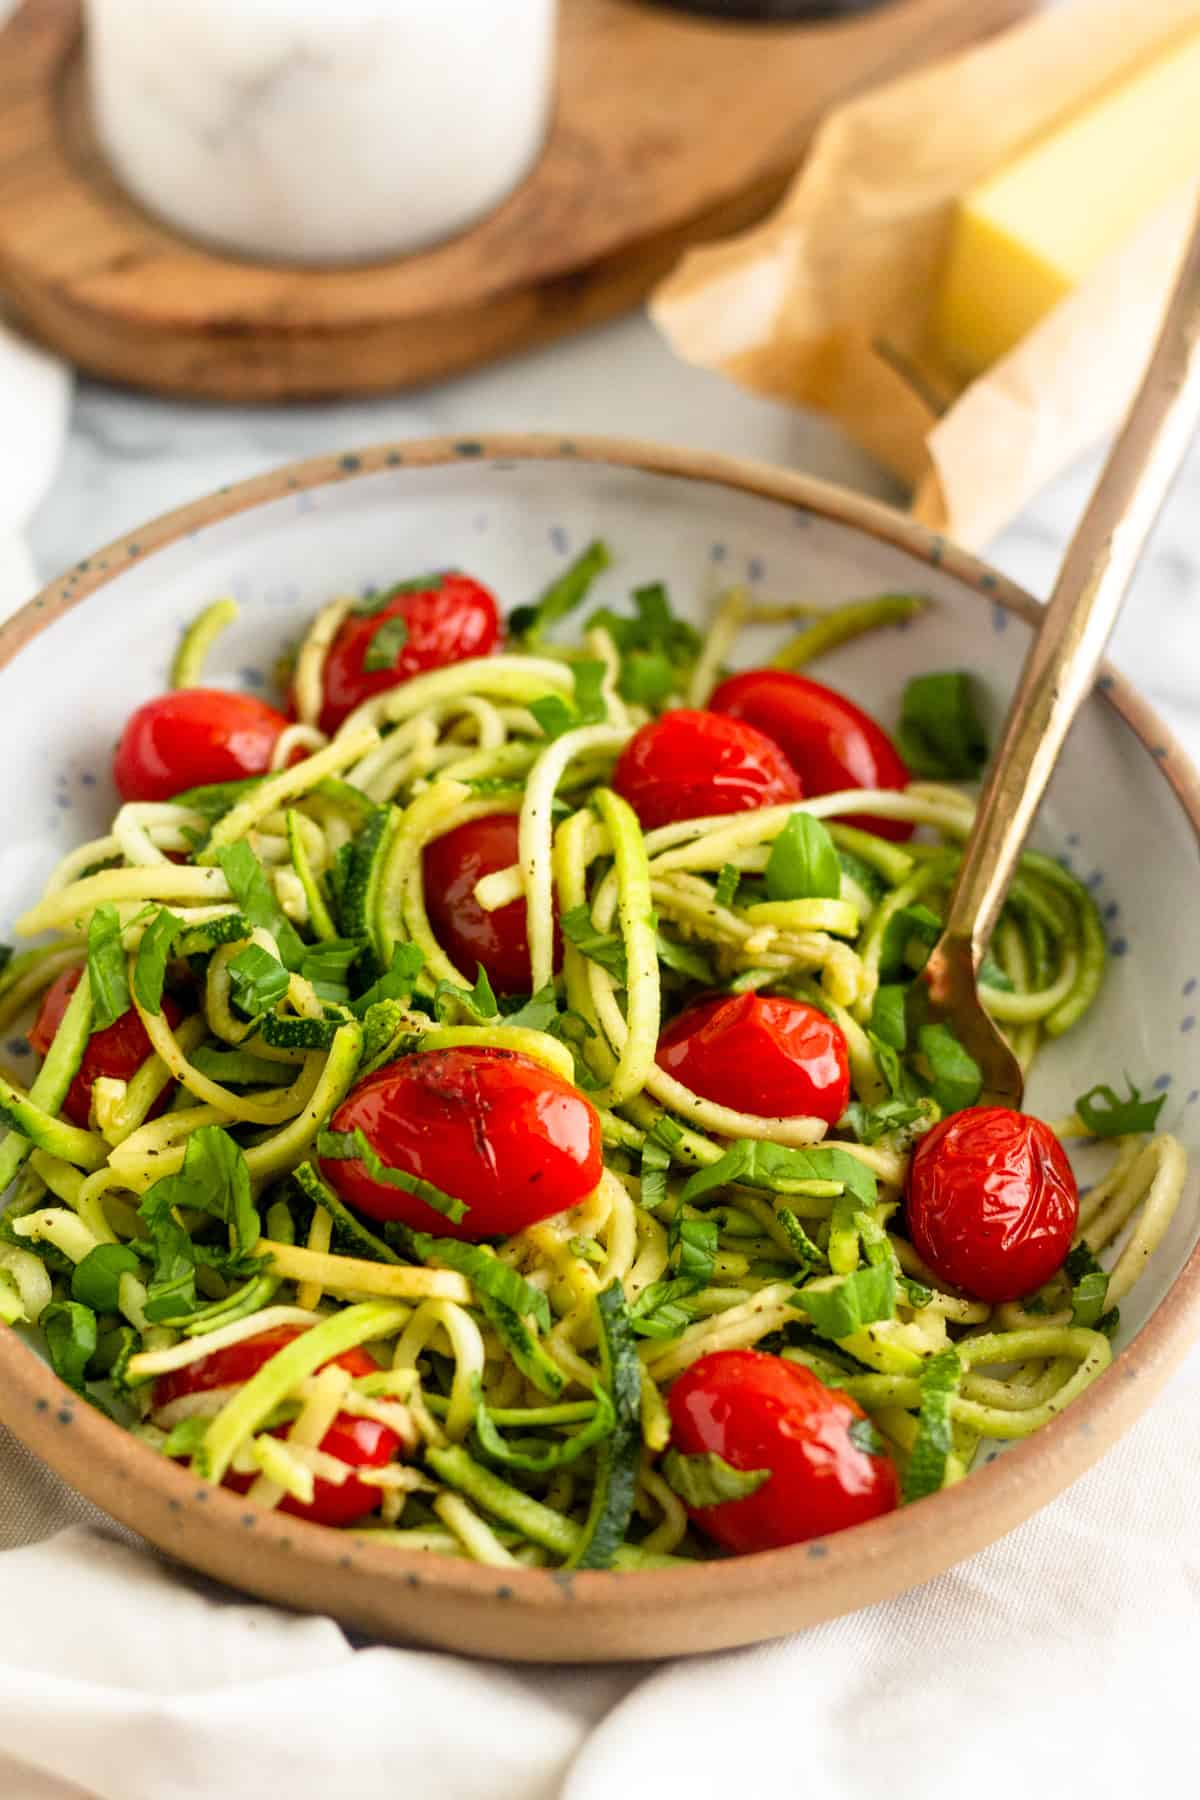 Bowl of zucchini noodles with blistered tomatoes and basil with a gold fork in it in front of a stick of butter and a salt holder